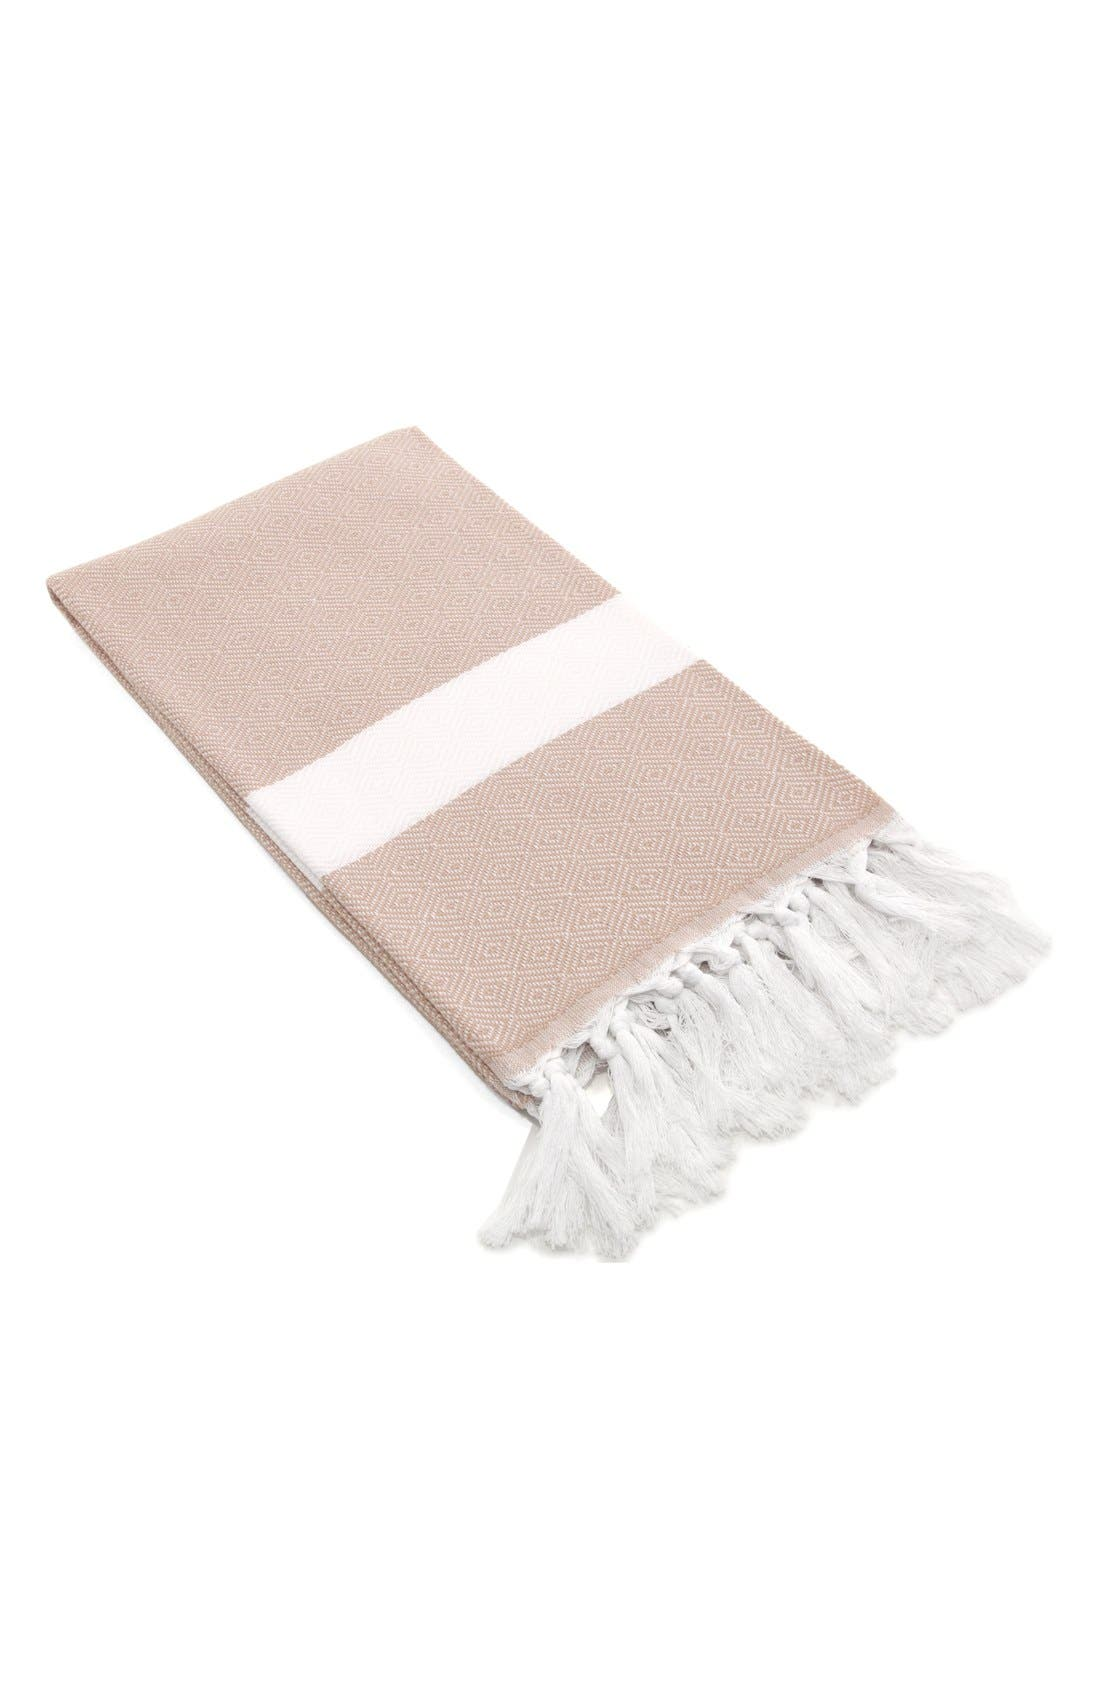 'Diamond' Turkish Pestemal Towel,                         Main,                         color, BEIGE